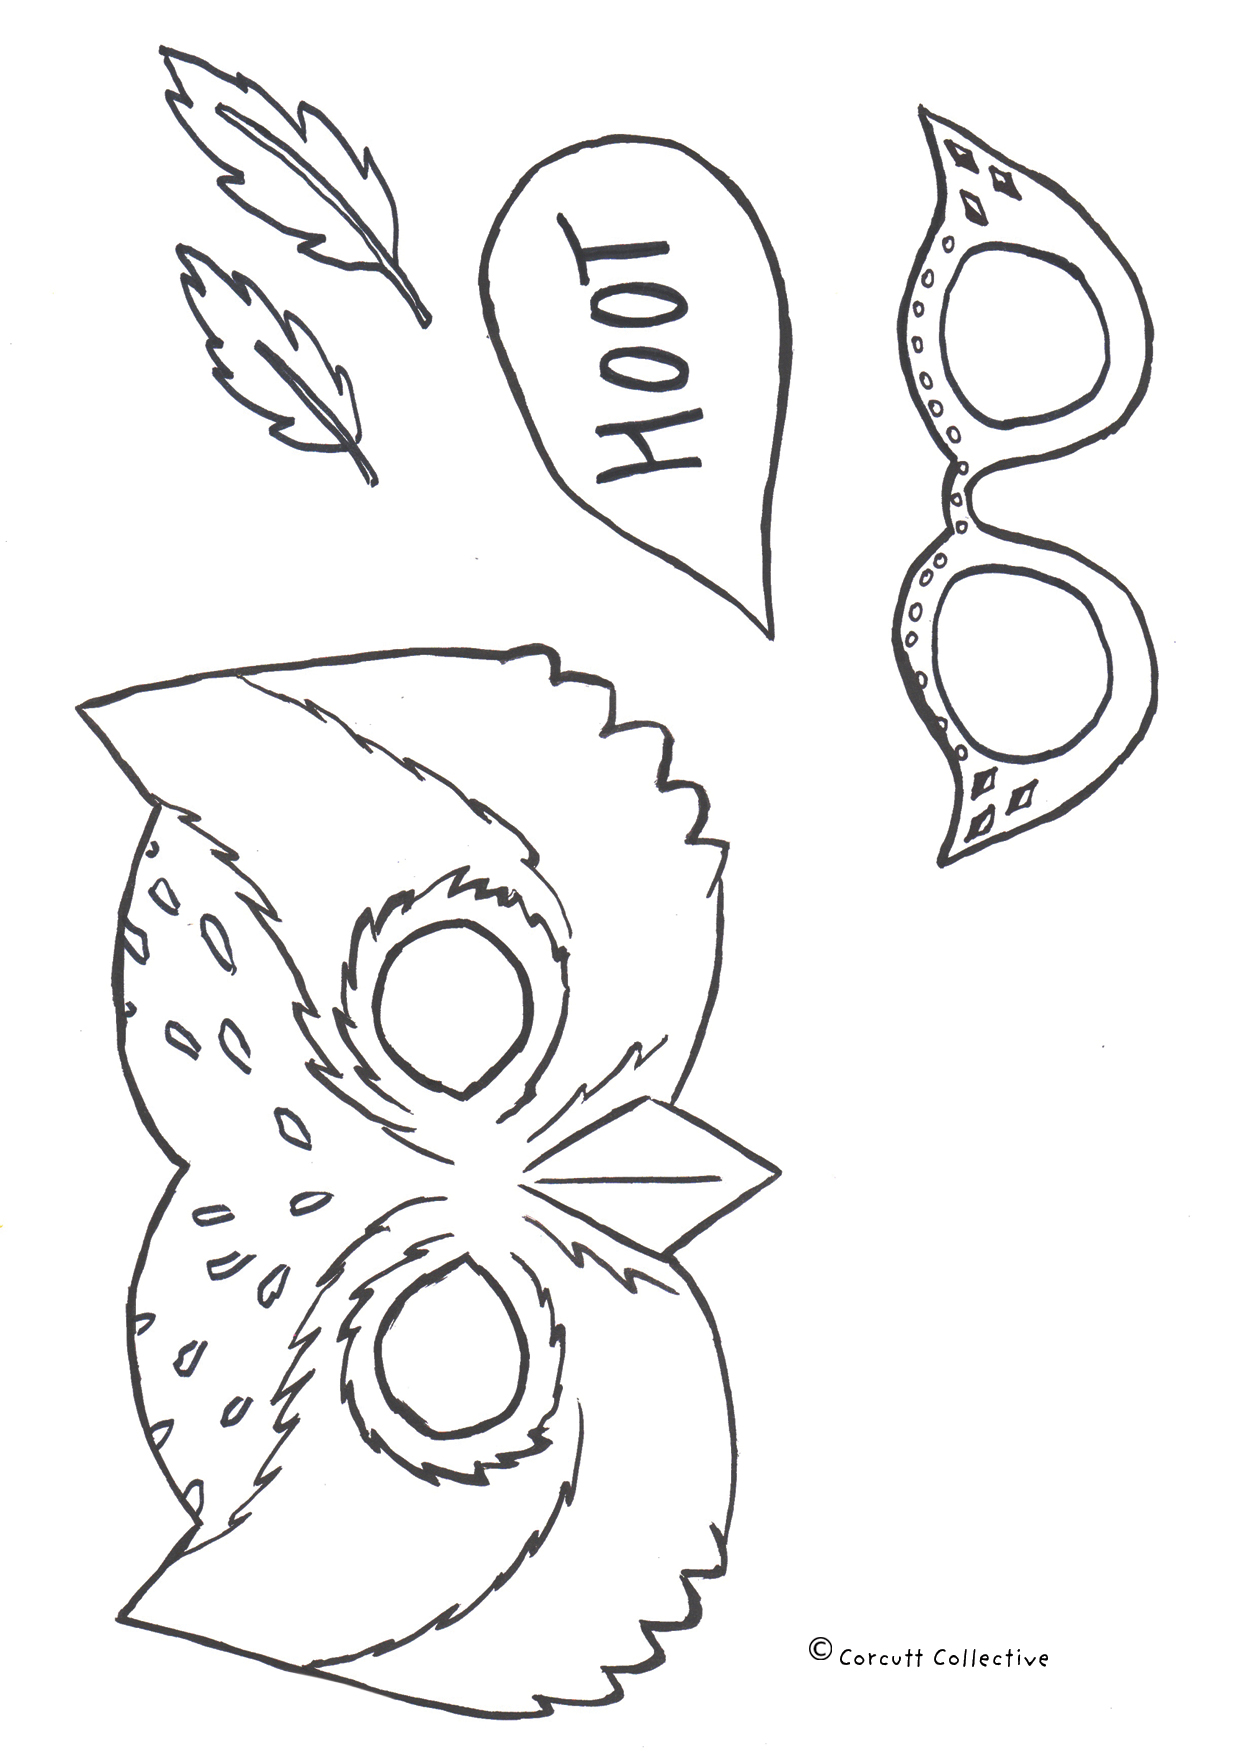 This is an image of Printable Feather Cut Outs intended for drawn